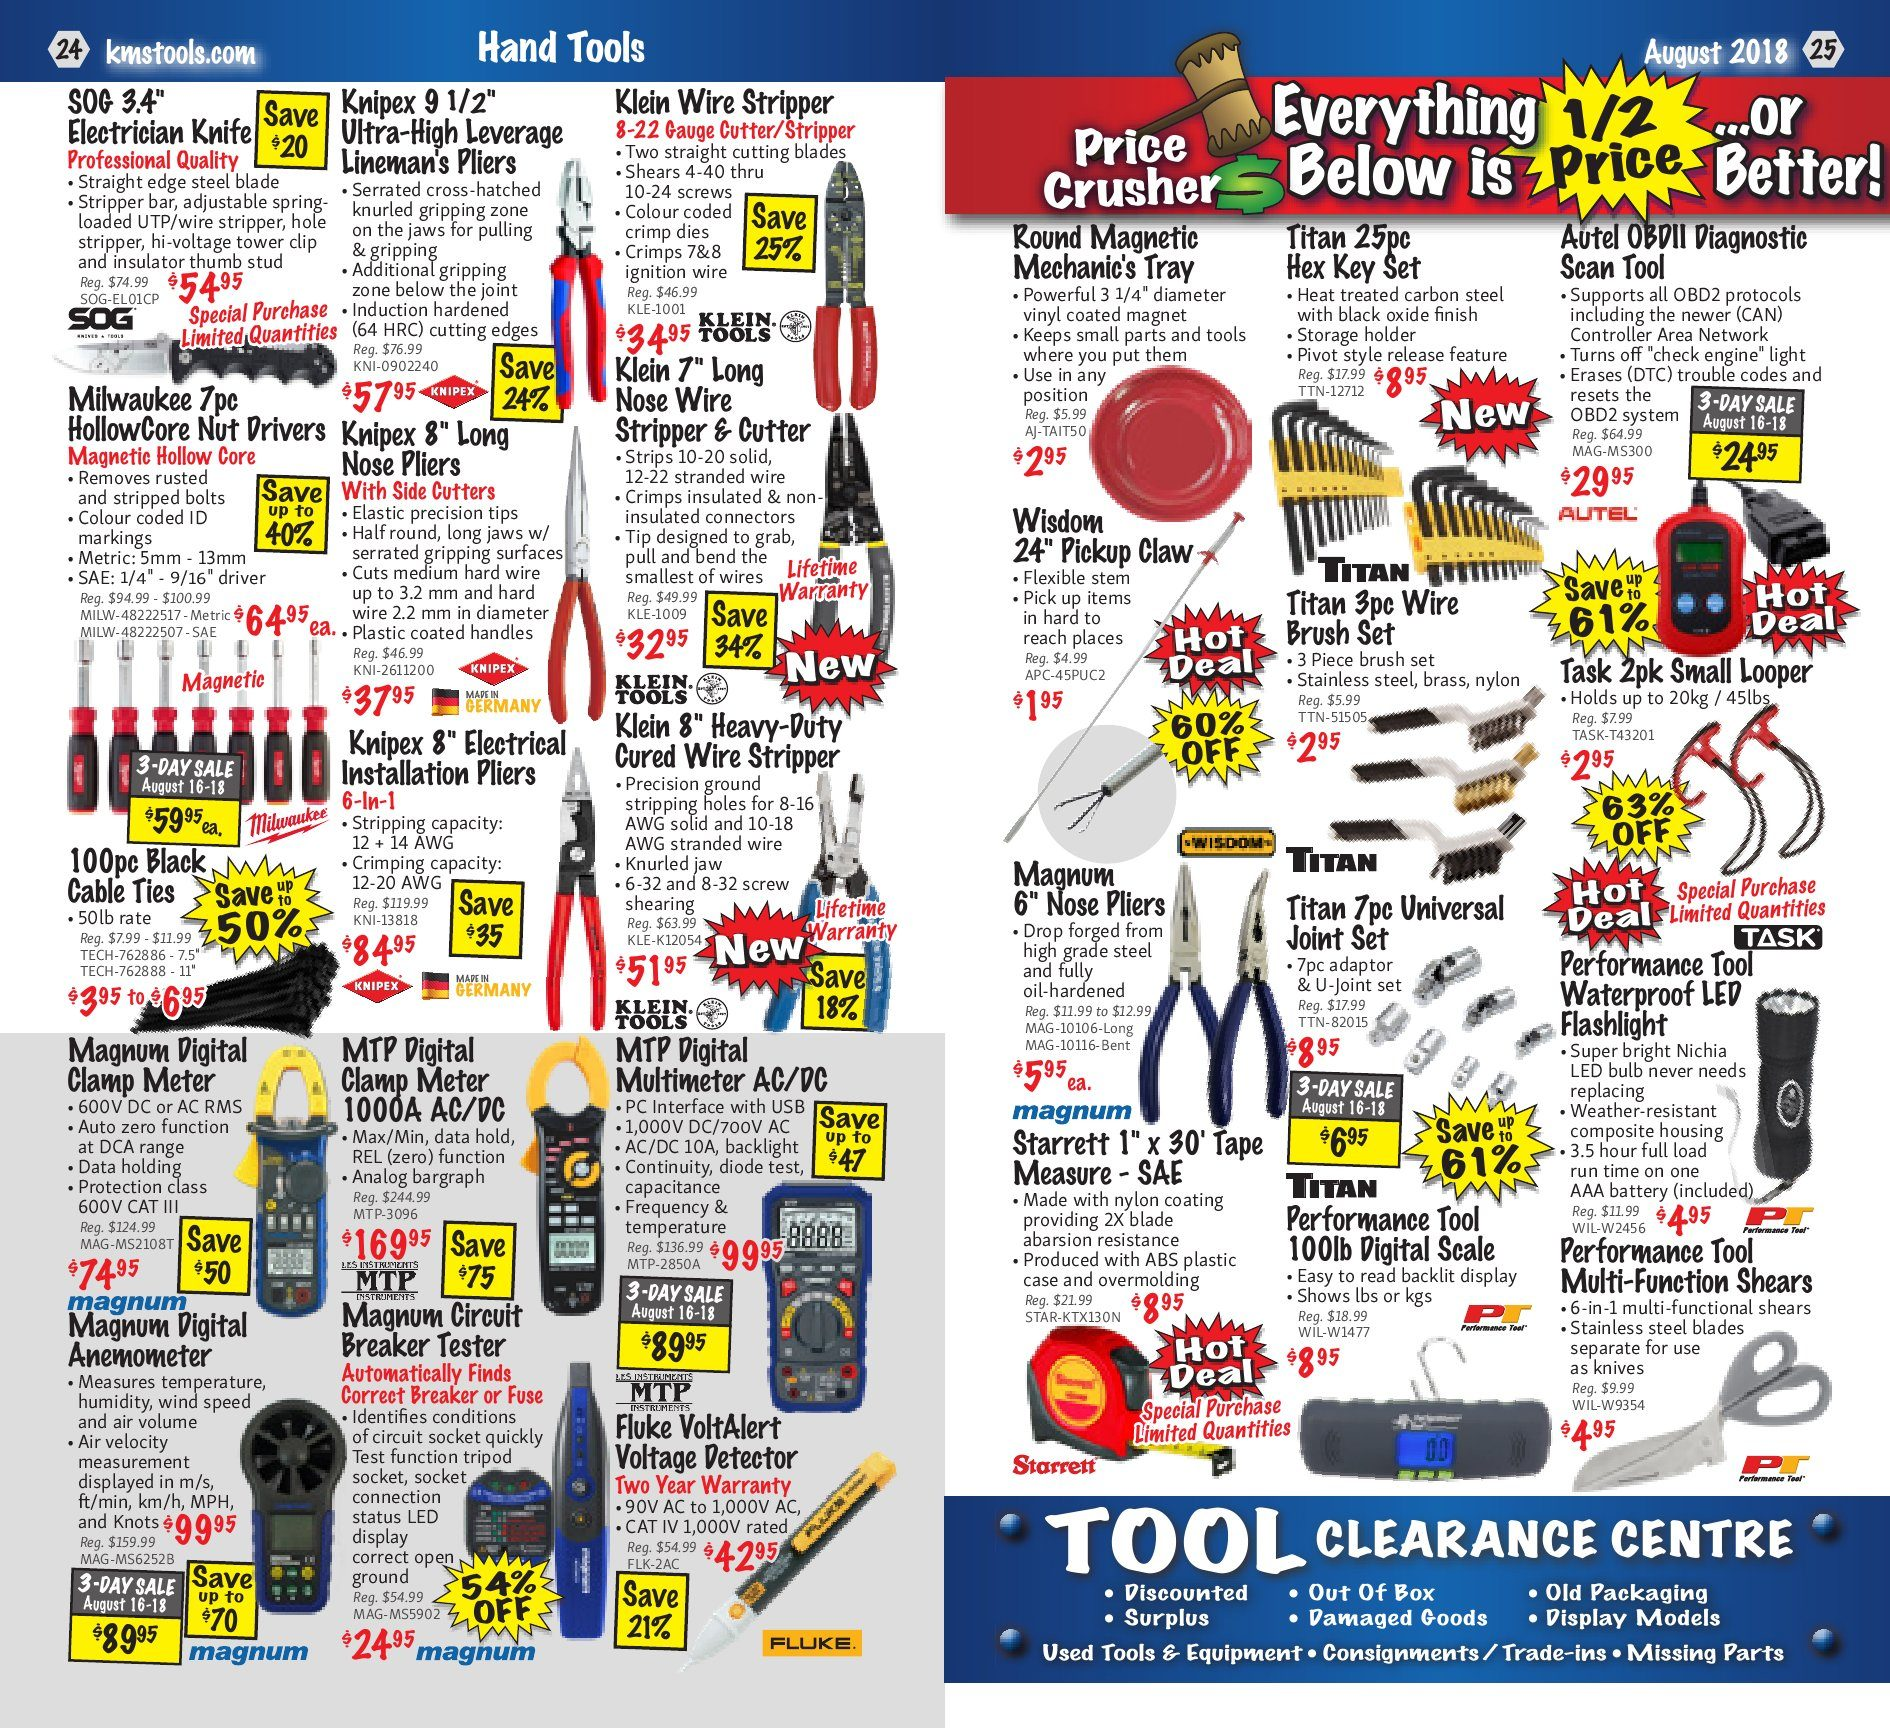 Kms Tools Weekly Flyer Back To Trades Sale Aug 1 31 Use Toggle Switch 20amp And Side Wired Singlepole 81200 W